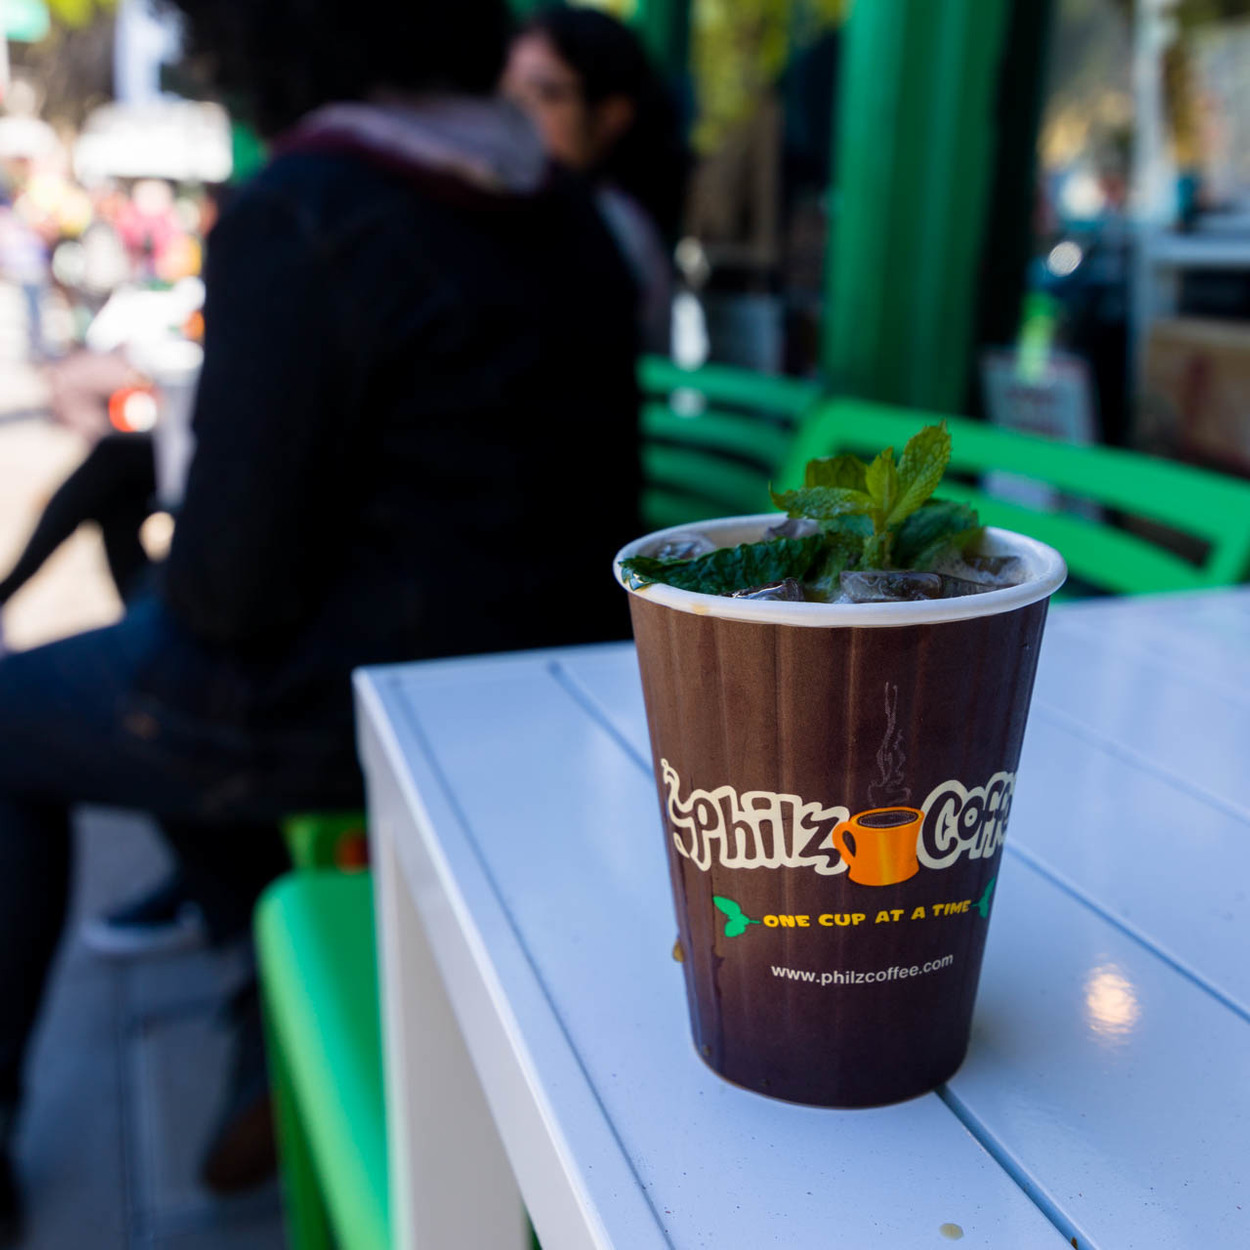 Philz coffee 14